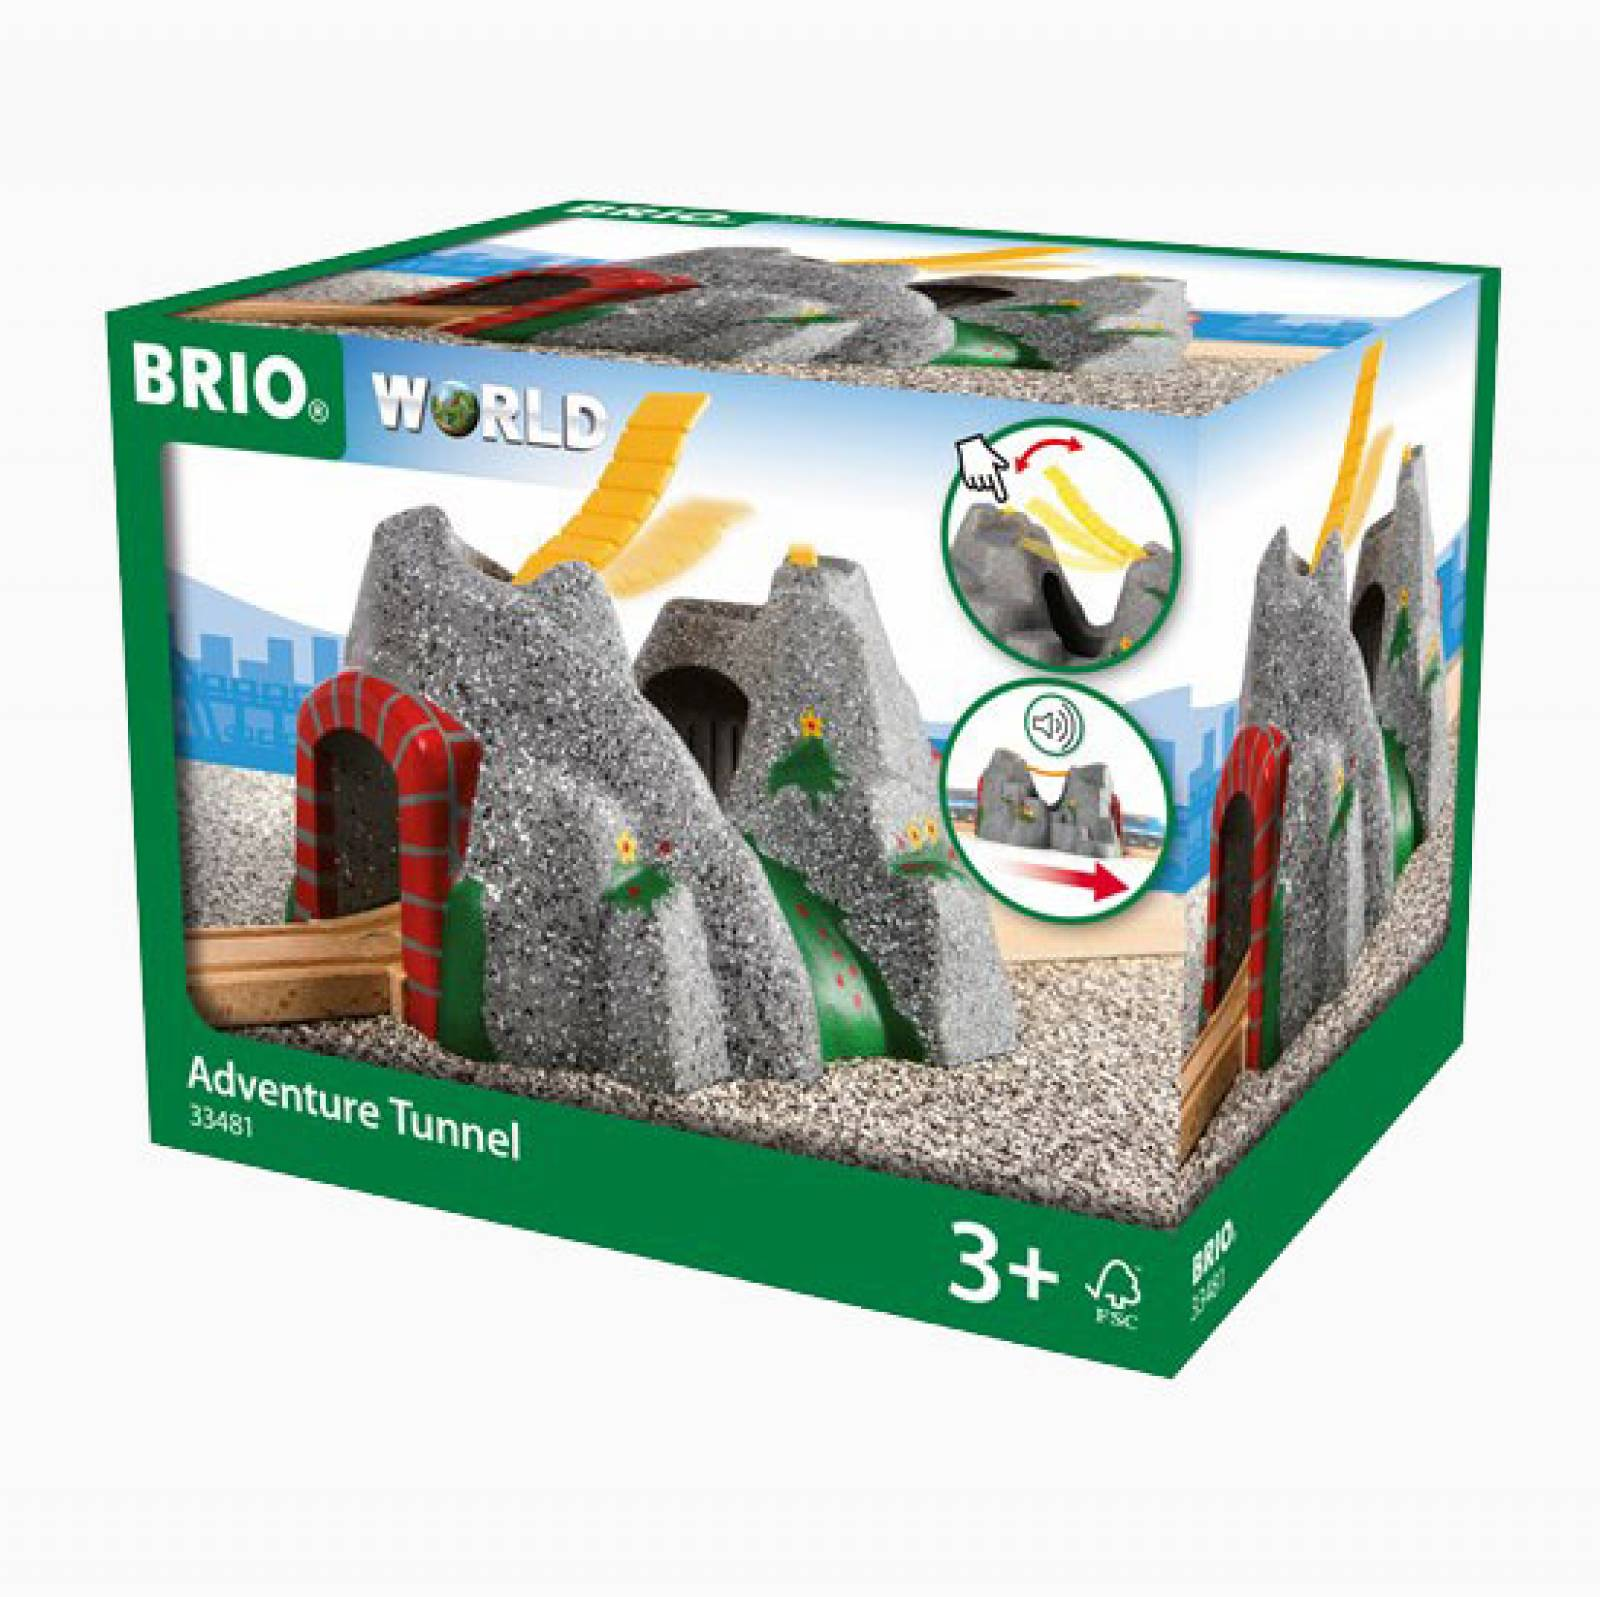 Adventure Tunnel BRIO Wooden Railway Age 3+ thumbnails